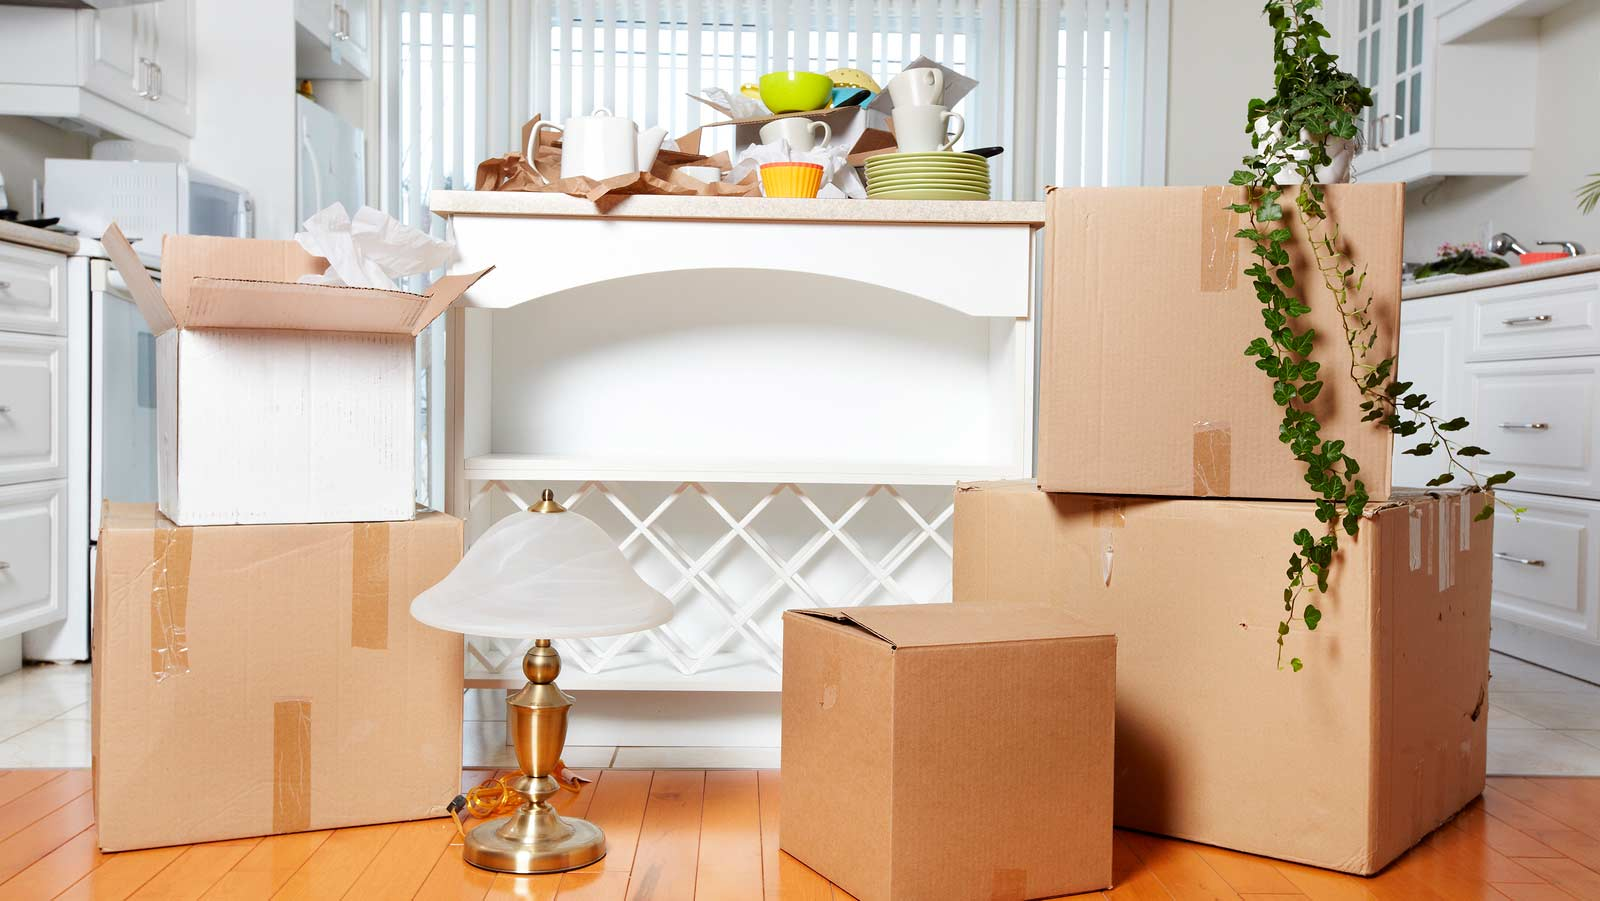 moving company residential home Residential Moving Services - West Michigan Movers